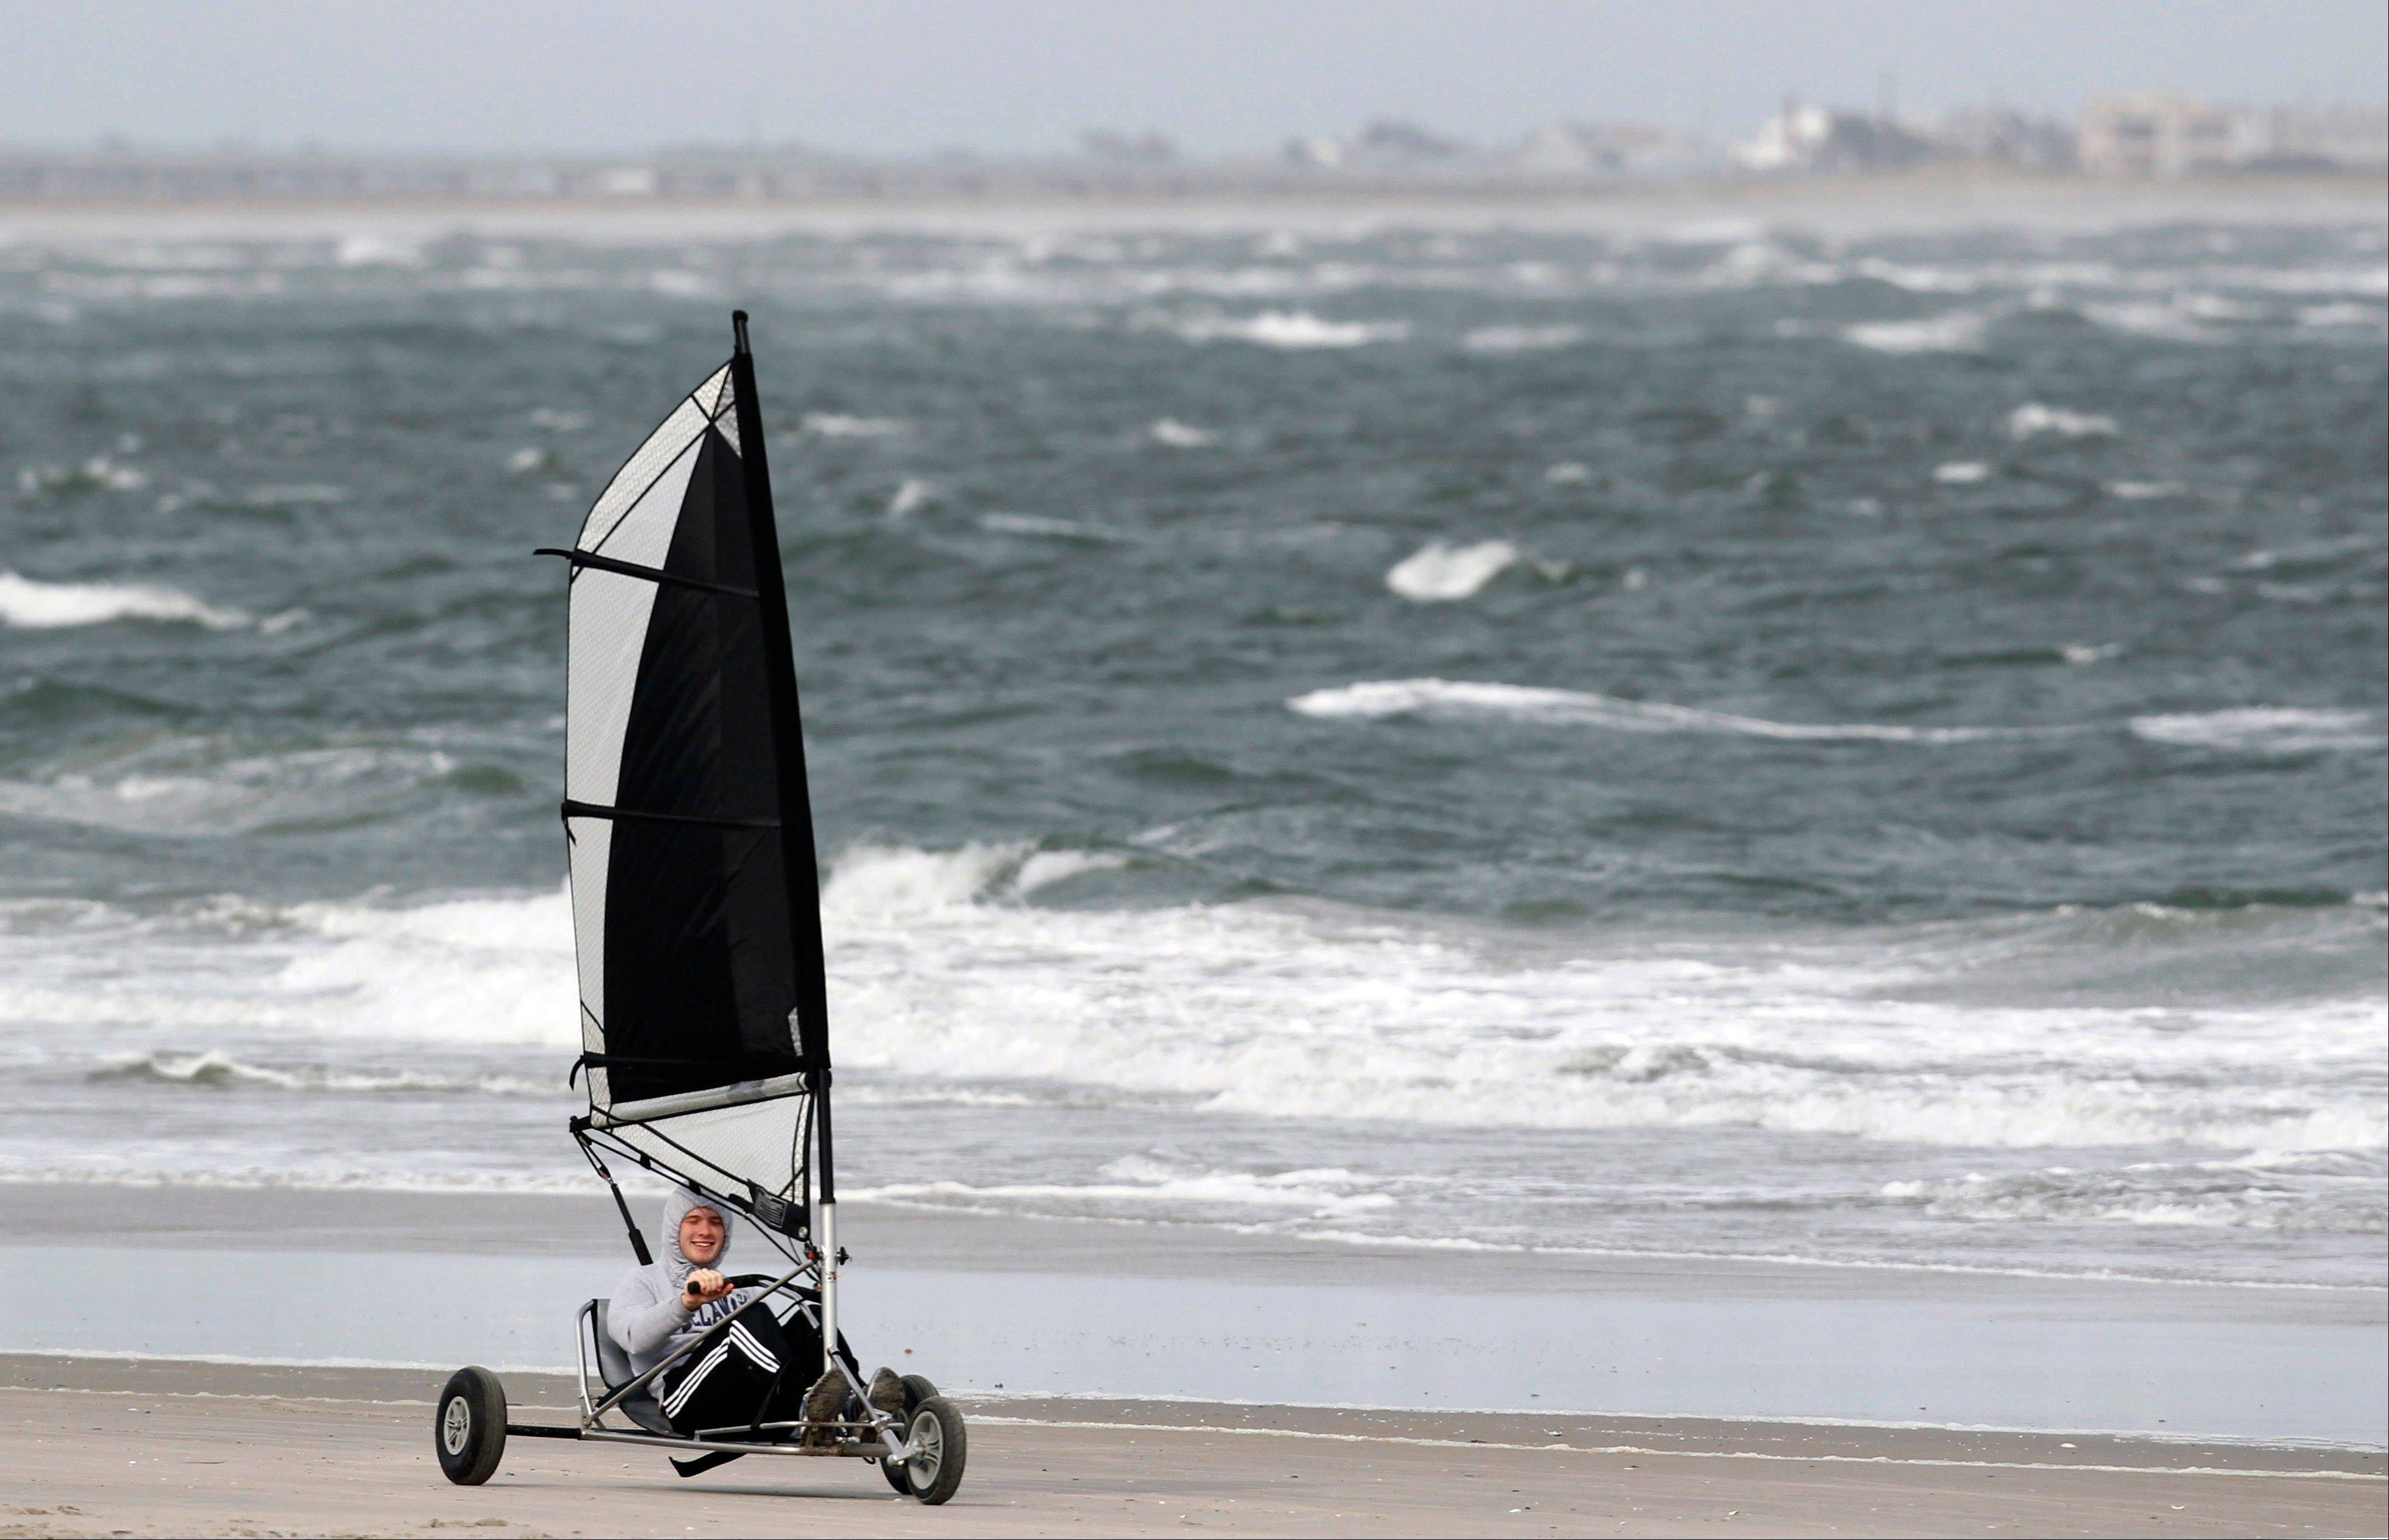 A person rides in a cart blown by the winds along the Altlantic Ocean in North Wildwood, N.J., Saturday, Oct. 27, 2012, as the winds pick up ahead of Hurricane Sandy. From the lowest lying areas of the Jersey shore, where residents were already being encouraged to leave, to the state's northern highlands, where sandbags were being filled and cars moved into parking lots on high ground, New Jersey began preparing in earnest for Hurricane Sandy.